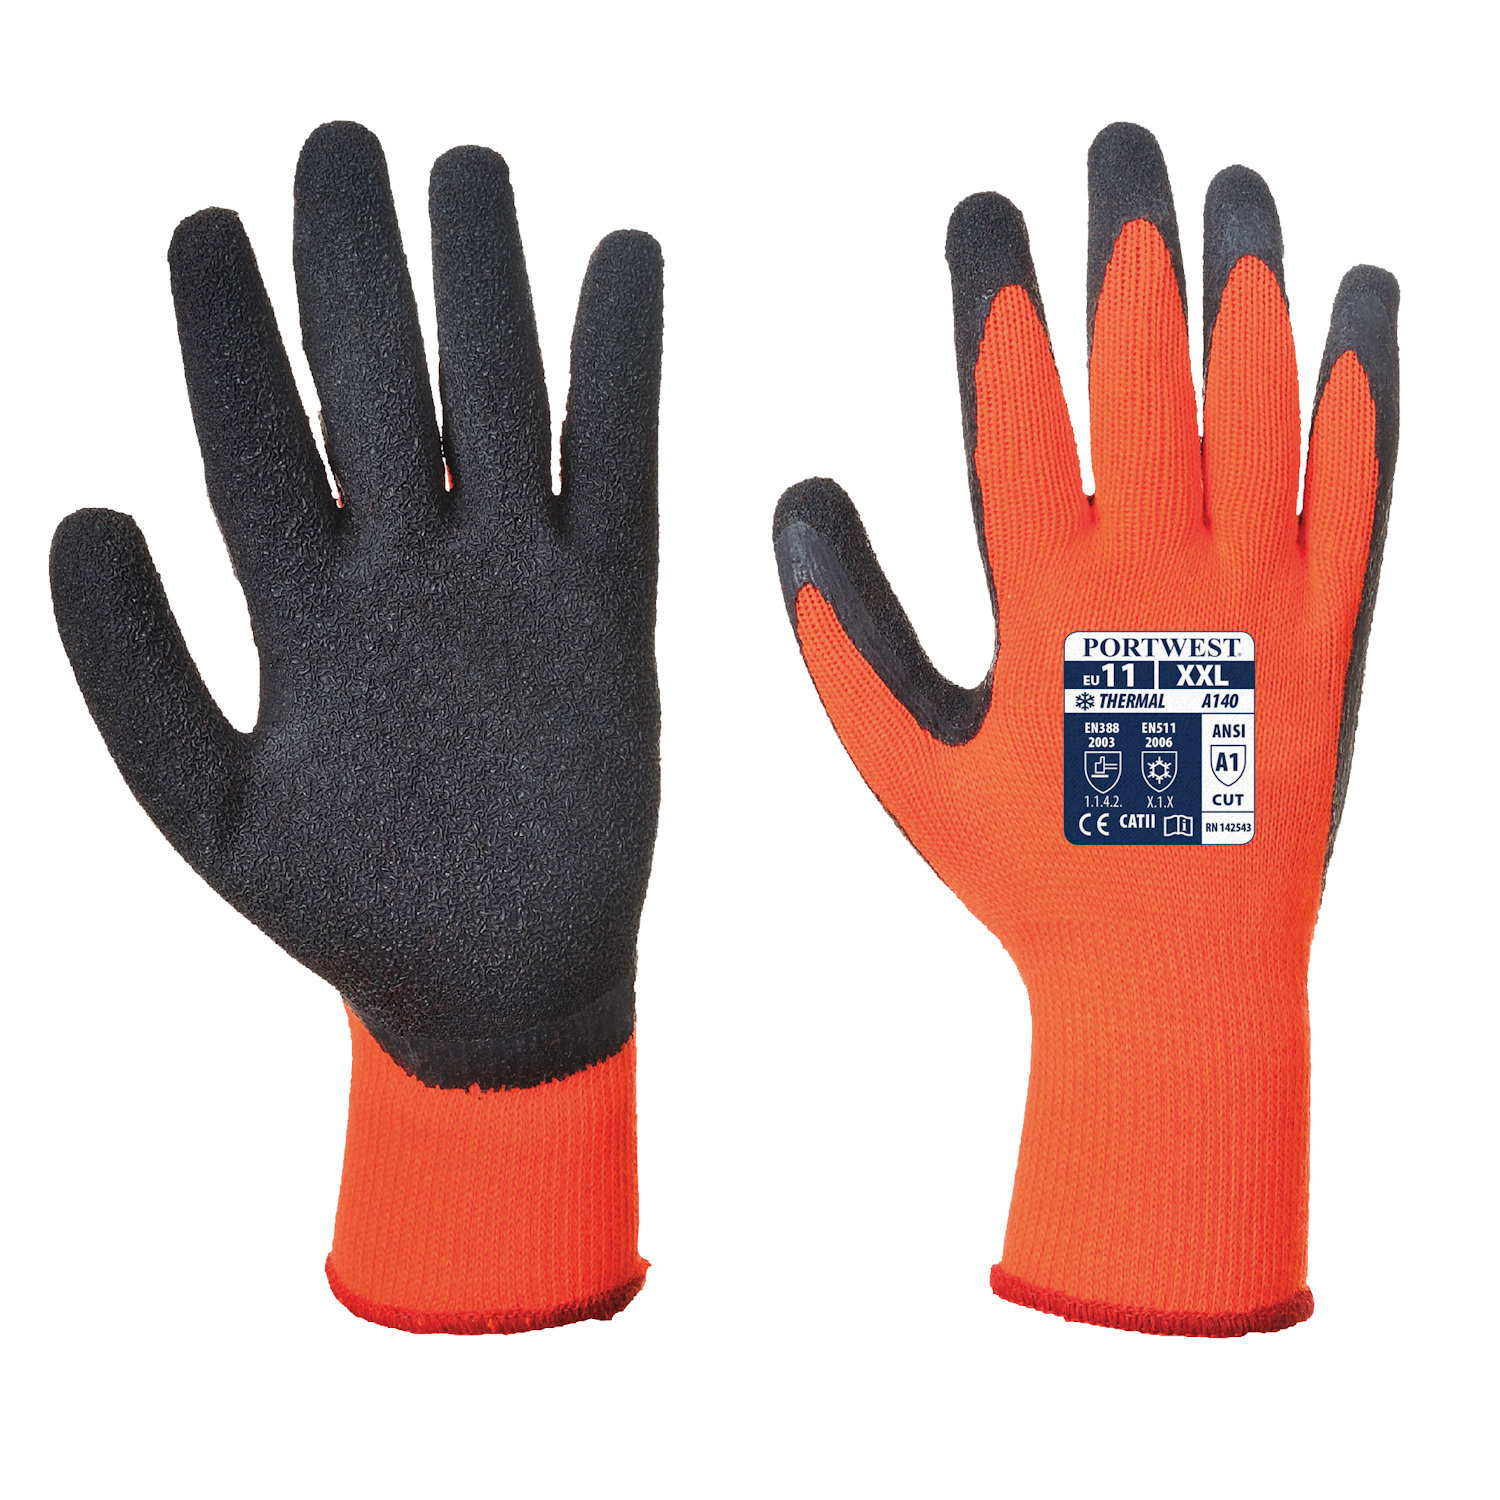 Portwest A140 glove